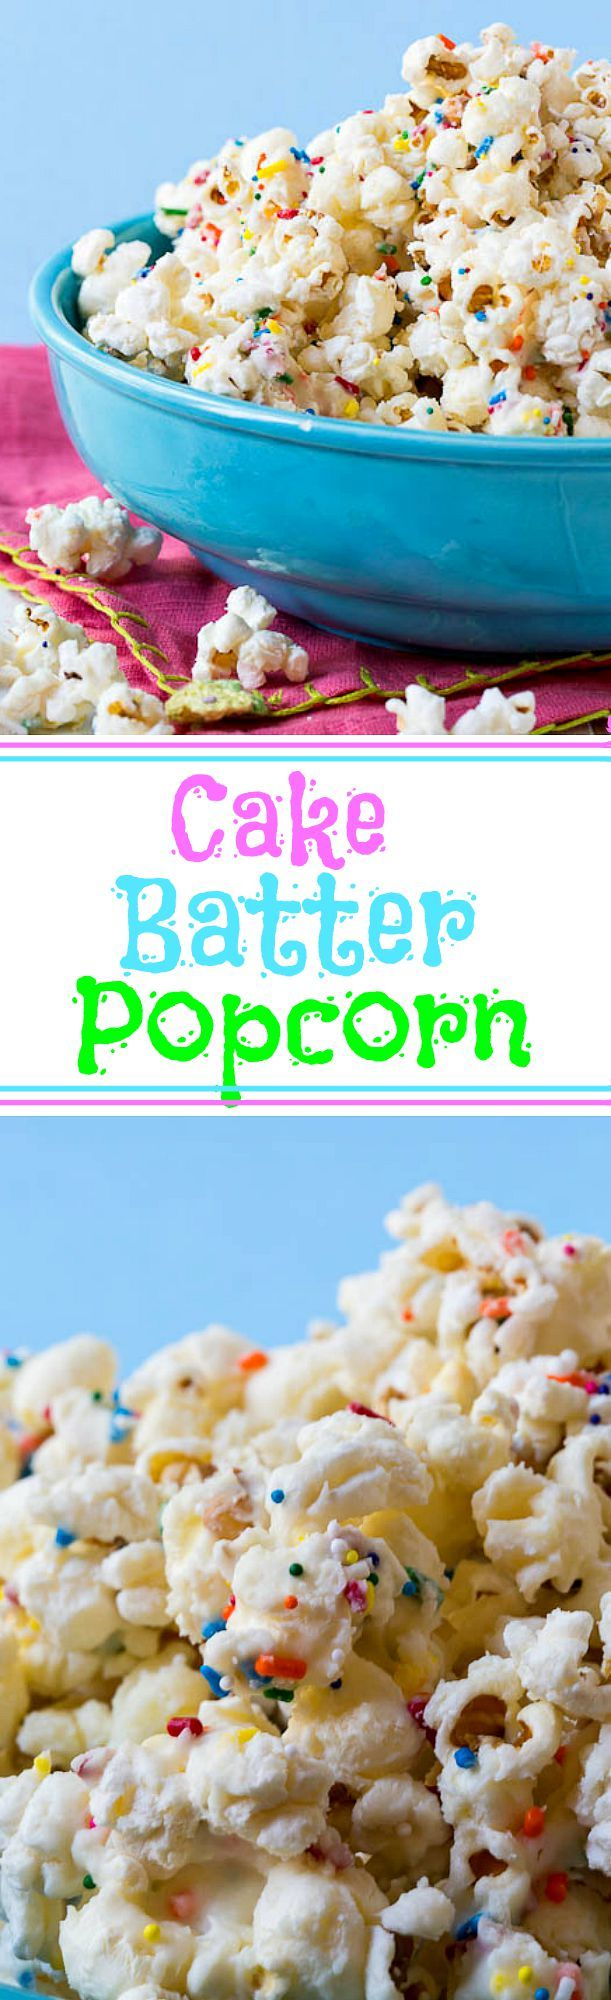 Cake Batter Popcorn - just a few ingredients turns boring popcorn into fun, festive popcorn that tastes like cake.